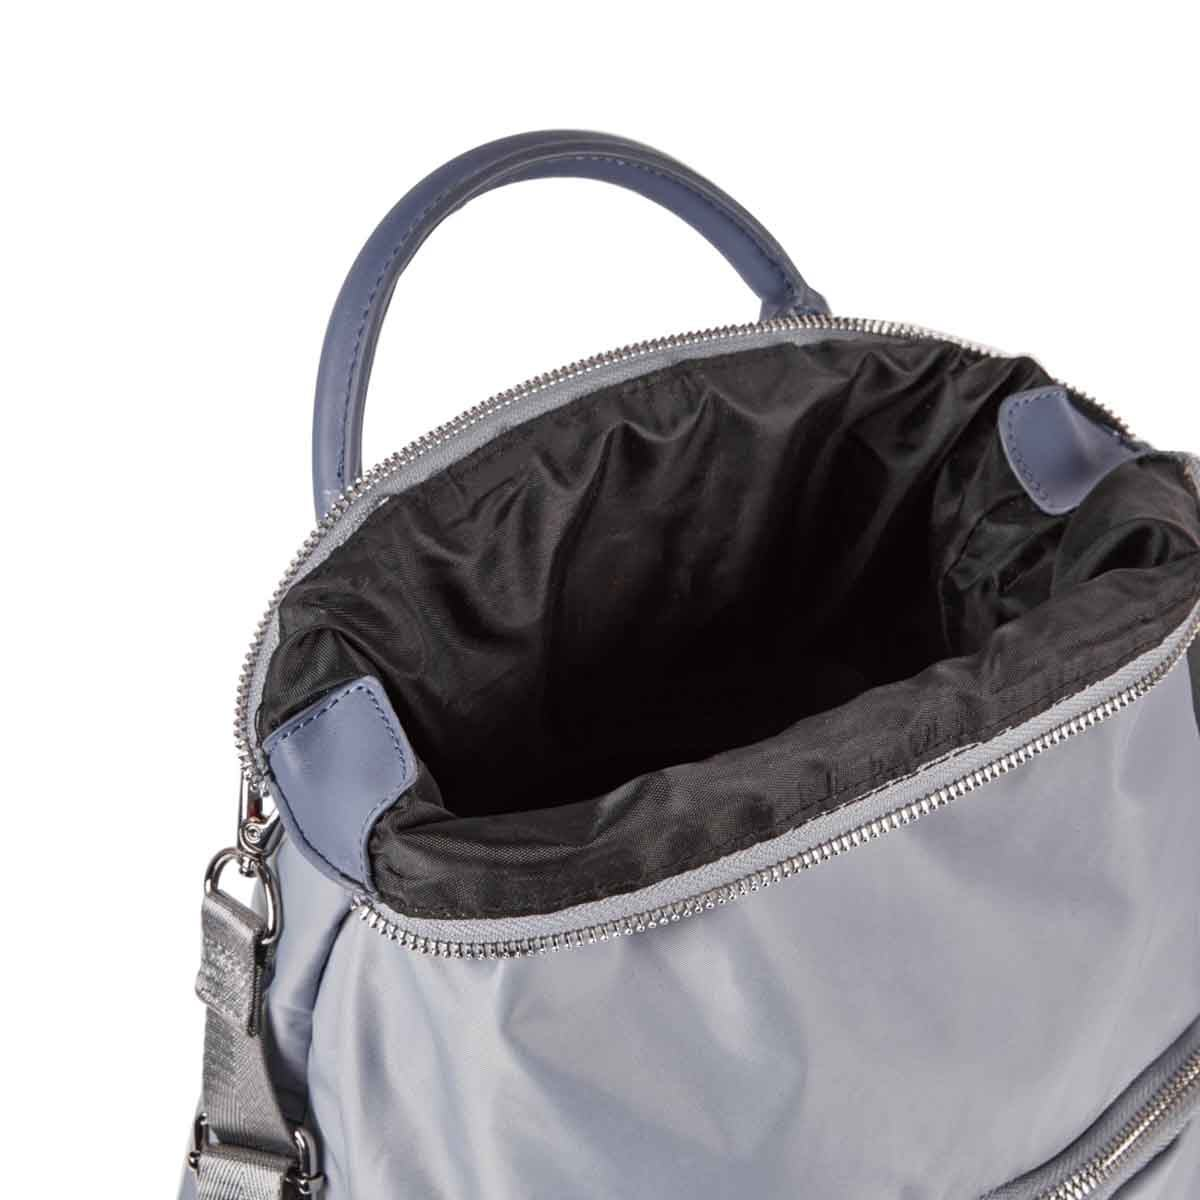 Lds Nellie shark convertible backpack